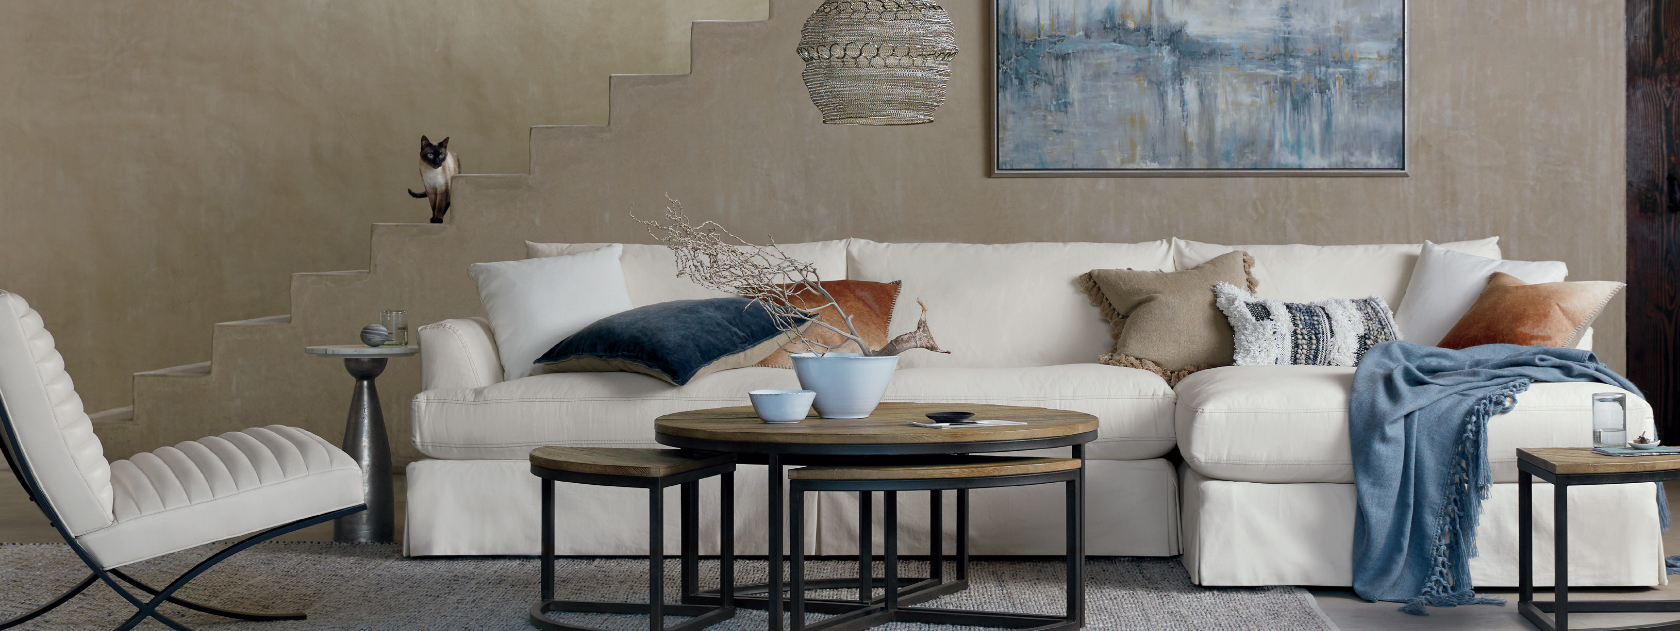 Shop Arhaus with Worry-Free Protection Plans